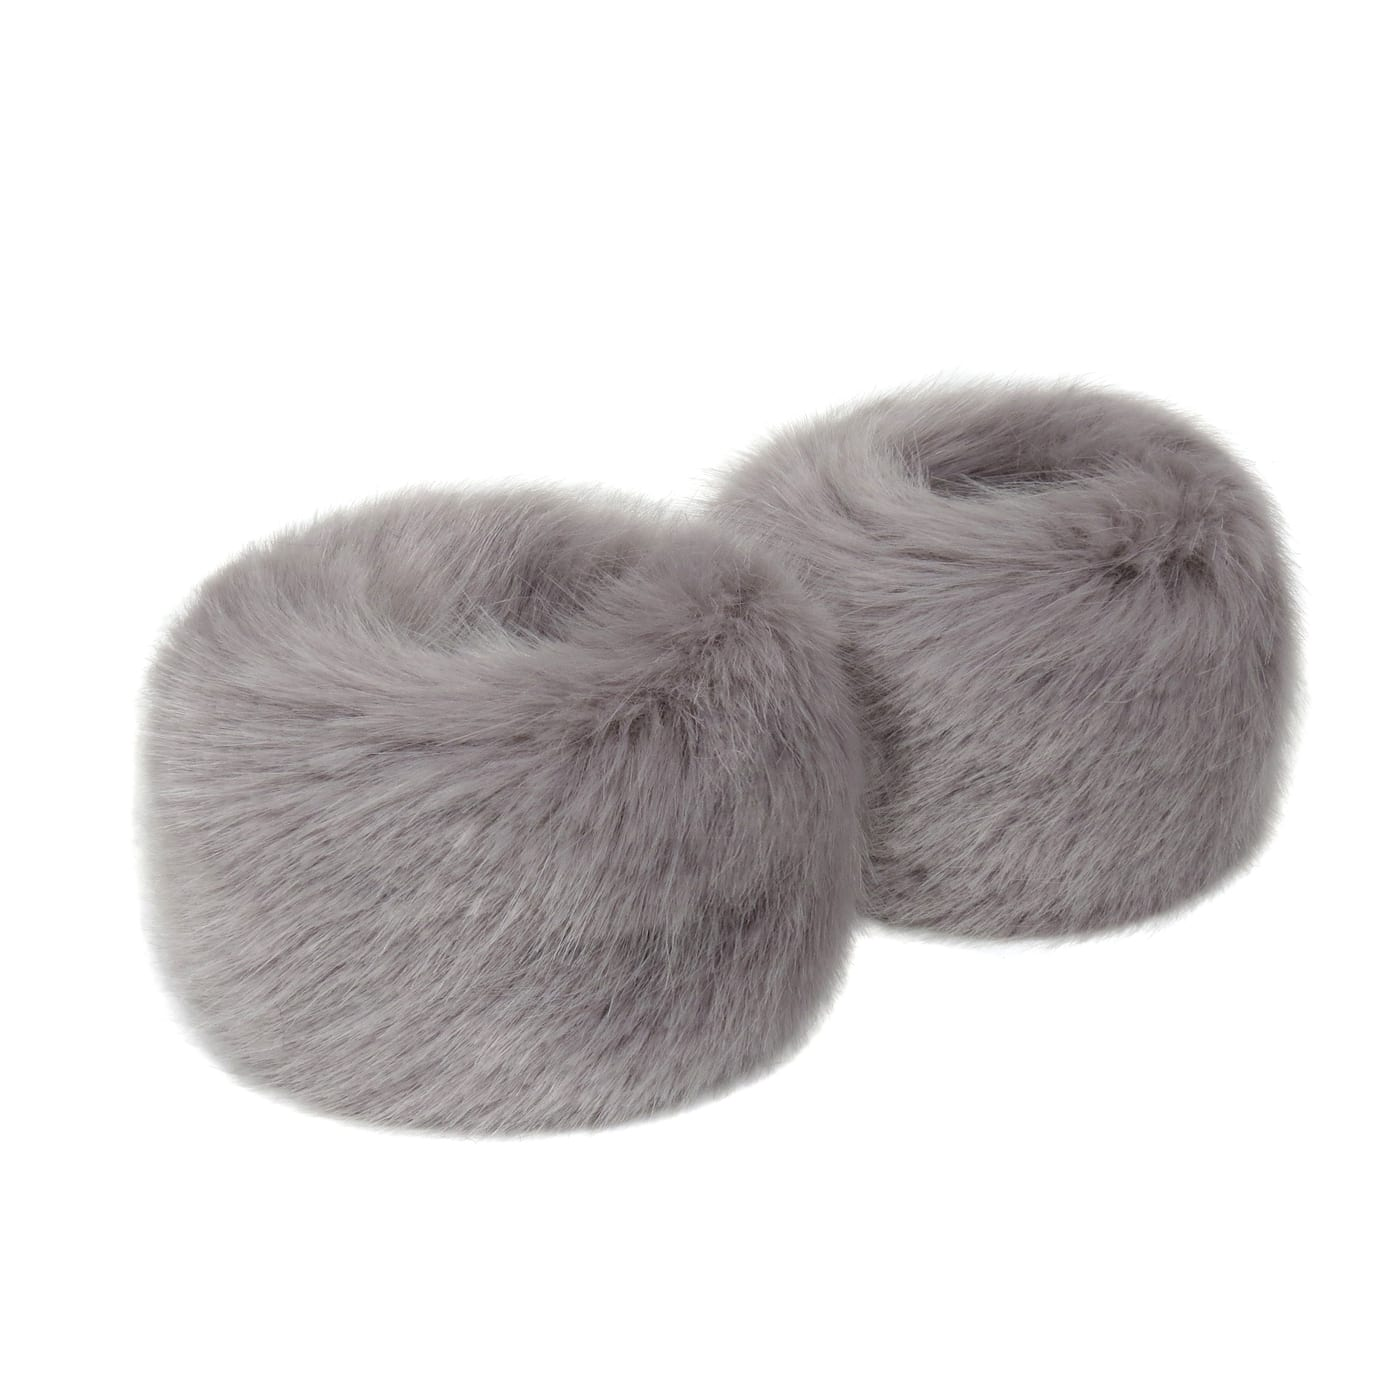 Opal Faux Fur Wrist Warmers